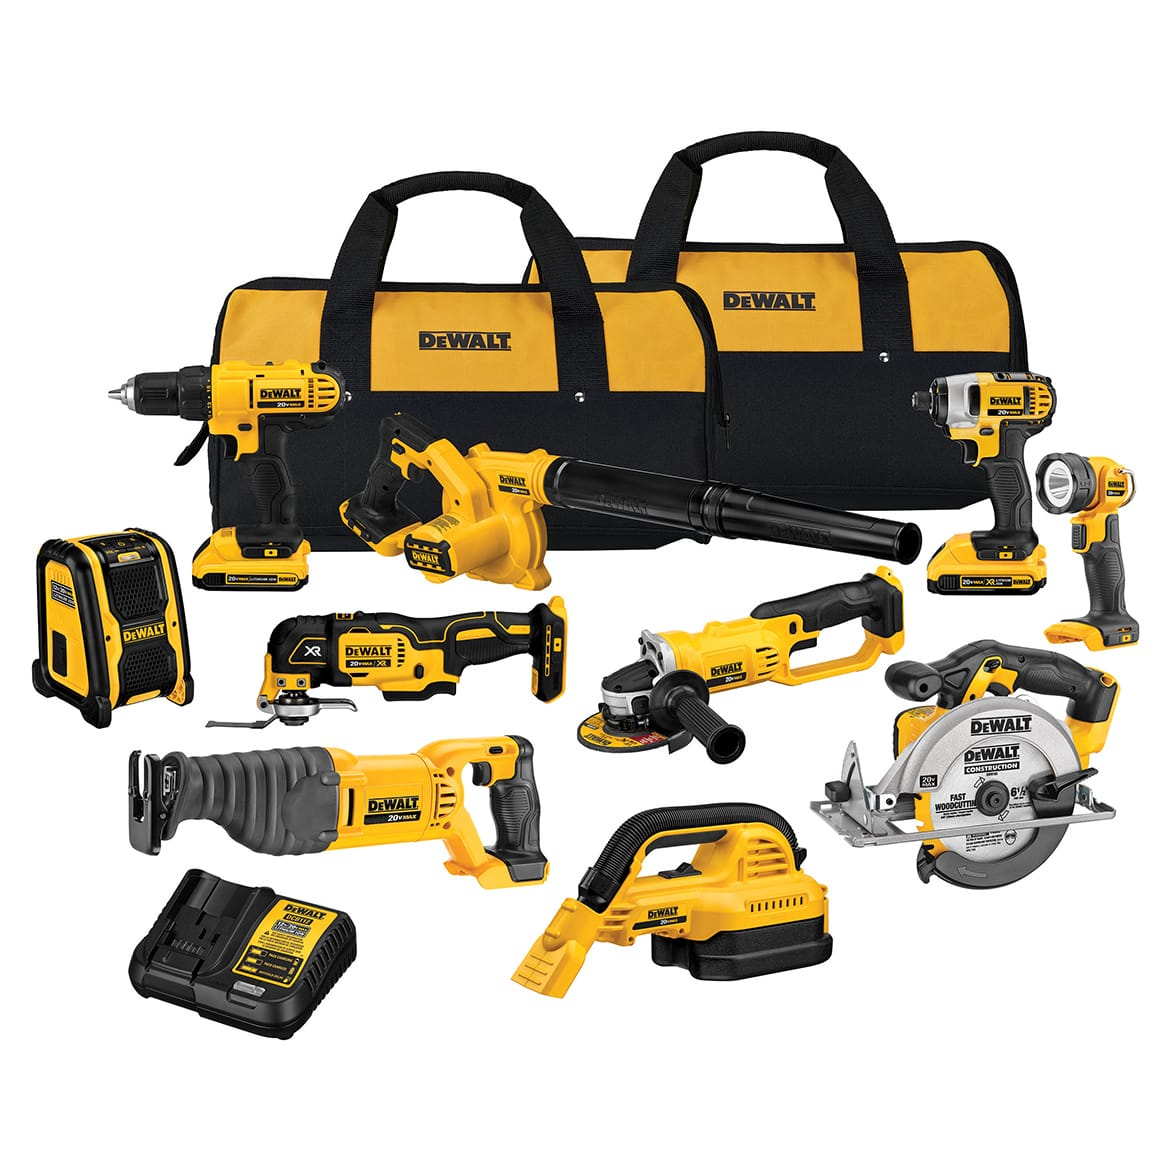 Dewalt 10 Piece tool kit 20v Lithium Ion -- Limited Quantity $499.99